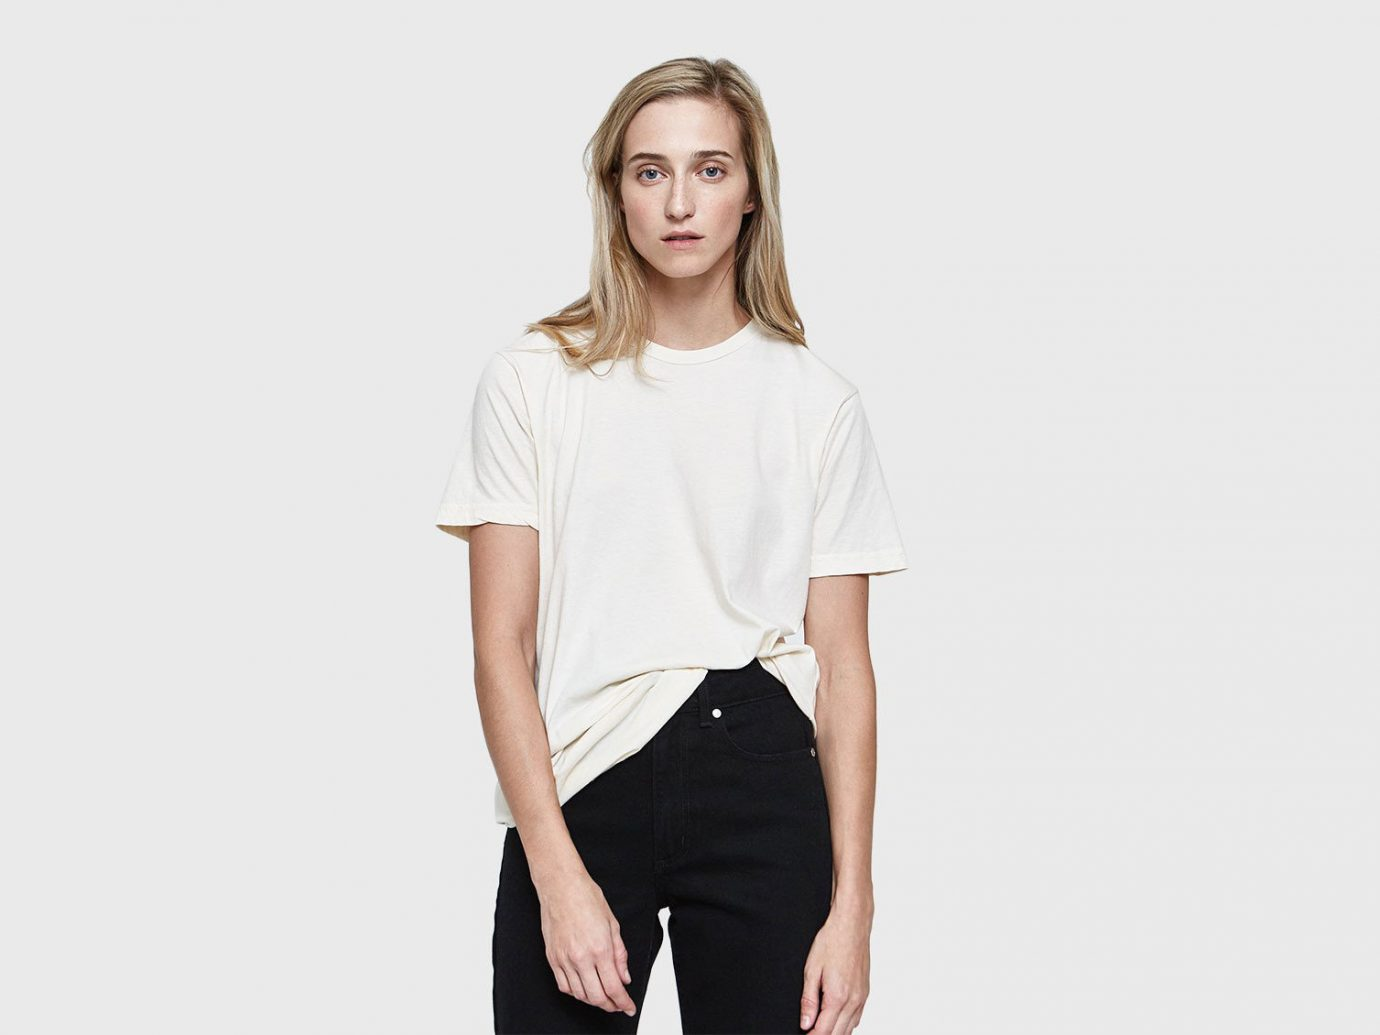 Packing Tips Style + Design Travel Shop clothing white person fashion model sleeve shoulder joint neck t shirt supermodel blouse waist posing top trouser